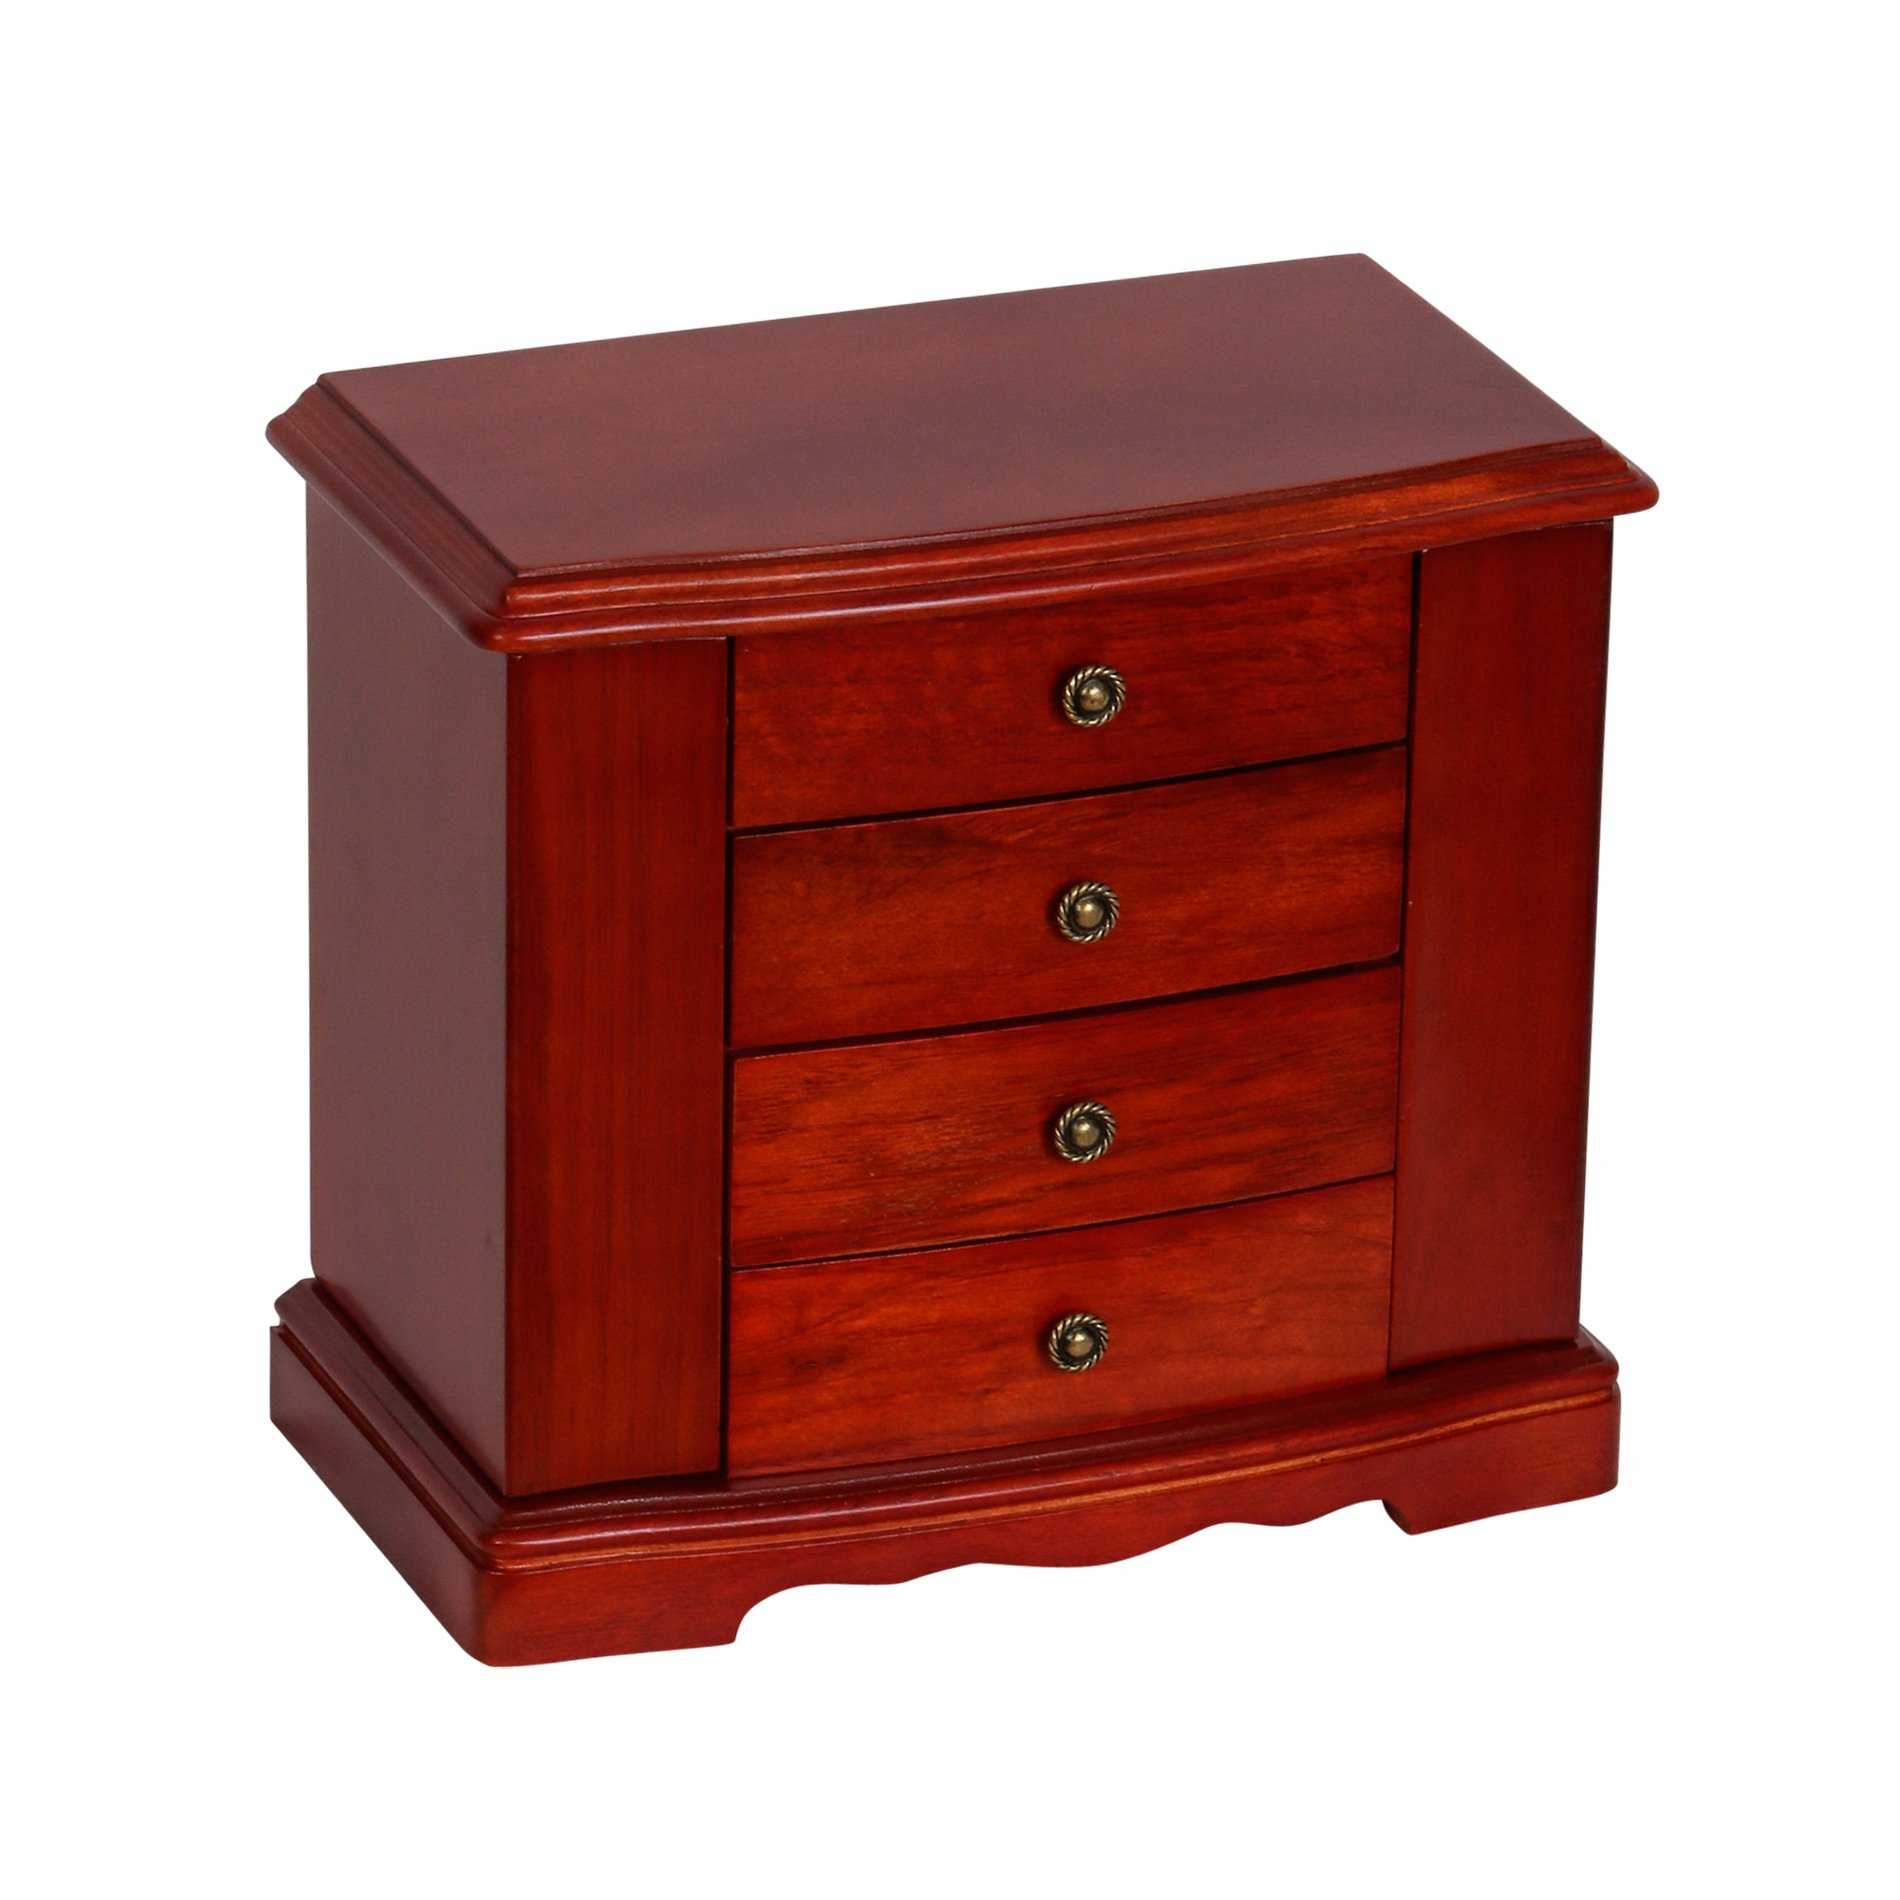 Mele & Co. Harmony Wooden Musical Jewelry Box (Cherry Finish)